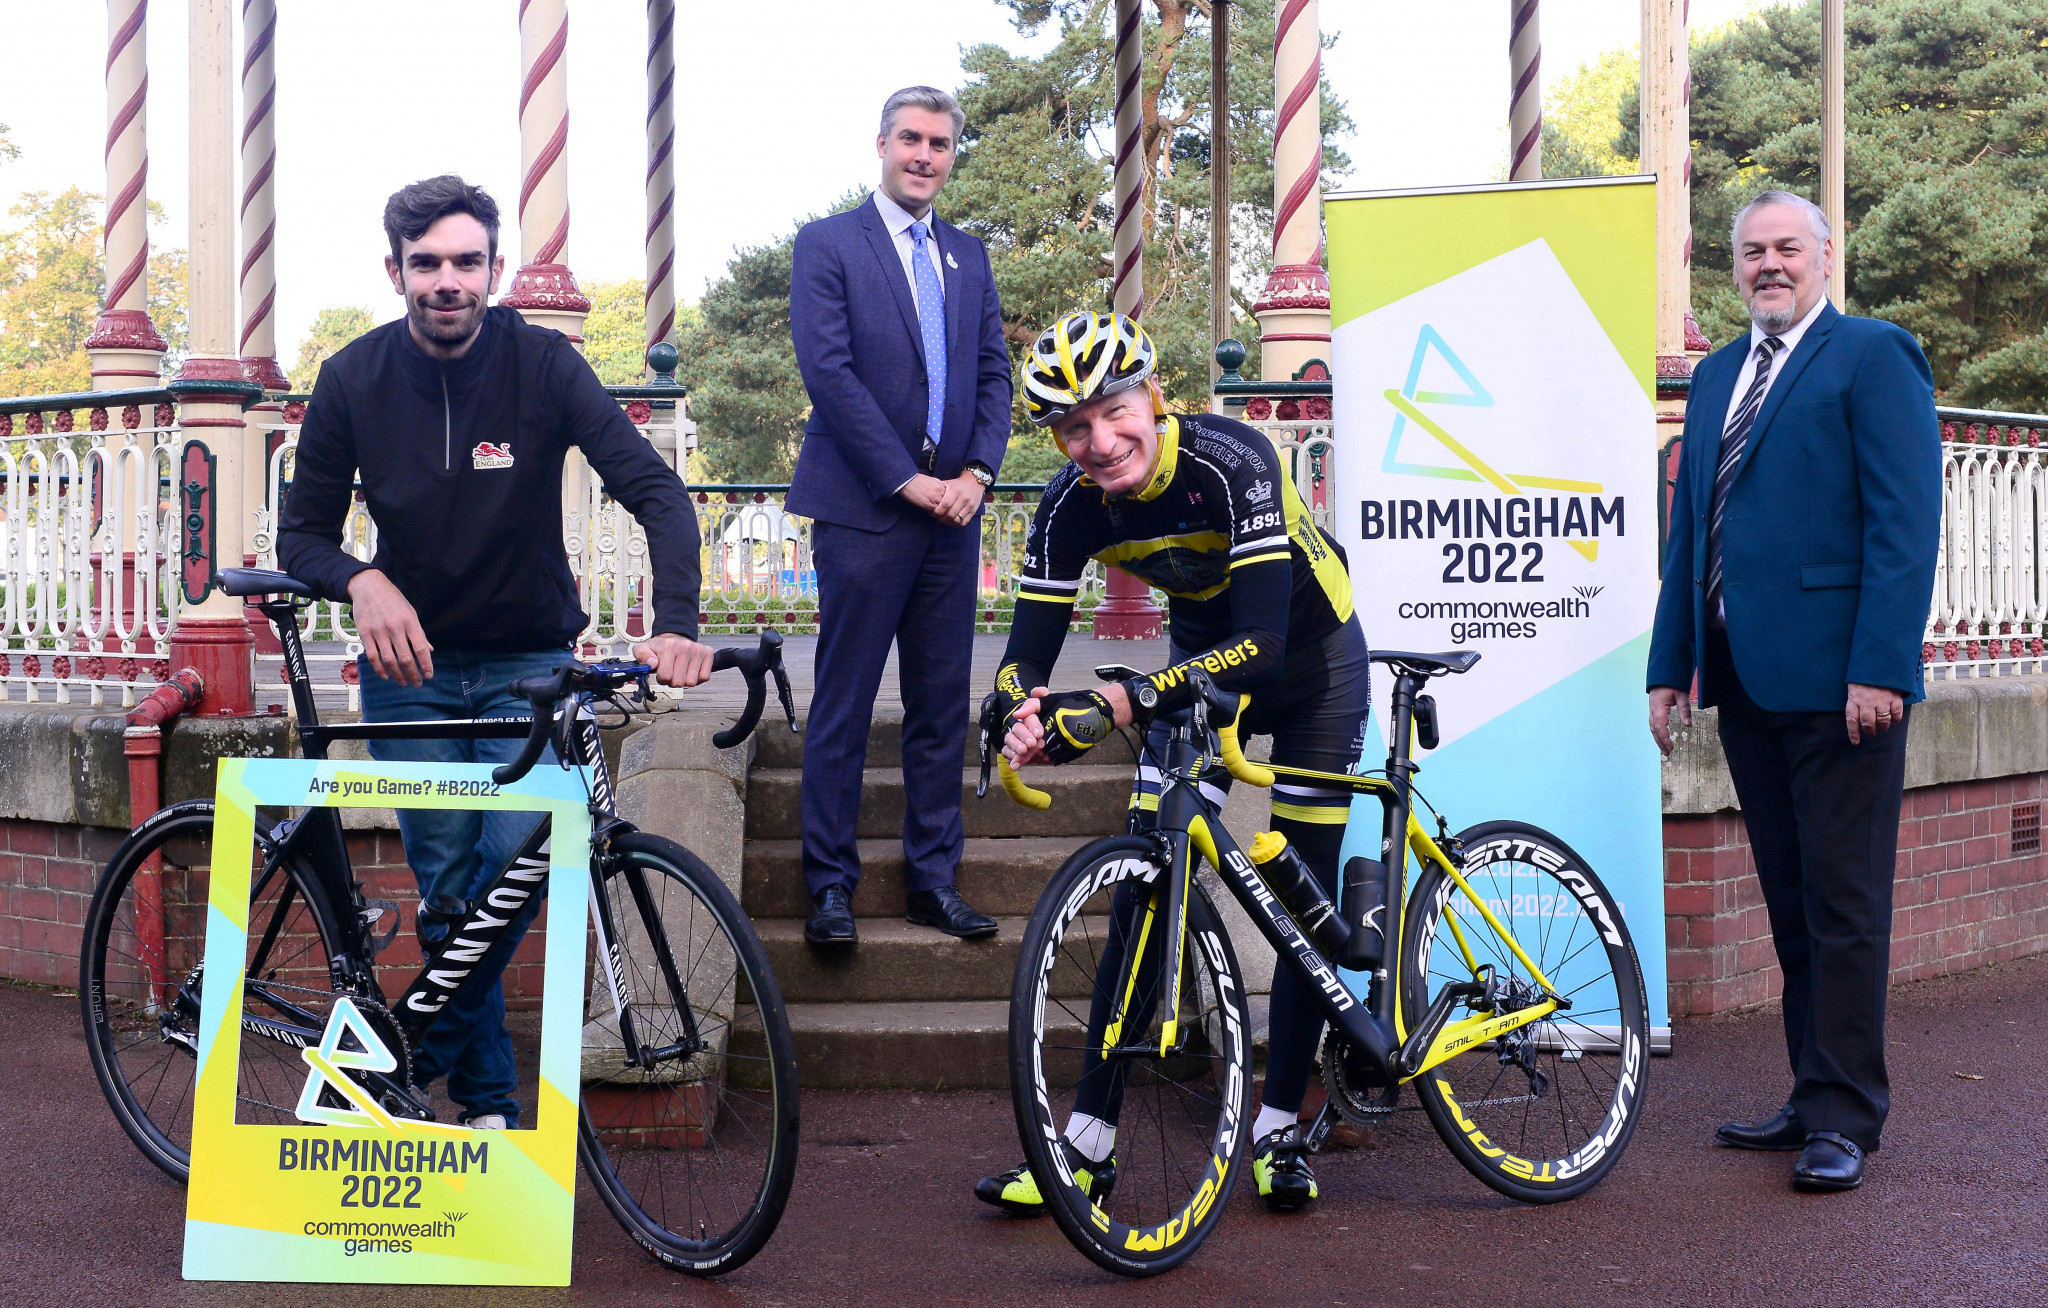 Local cyclists joined Birmingham 2022 chief Ian Reid, second left, to launch Wolverhampton and Warwick as the venues for the road cycling at the Commonwealth Games ©Birmingham 2022